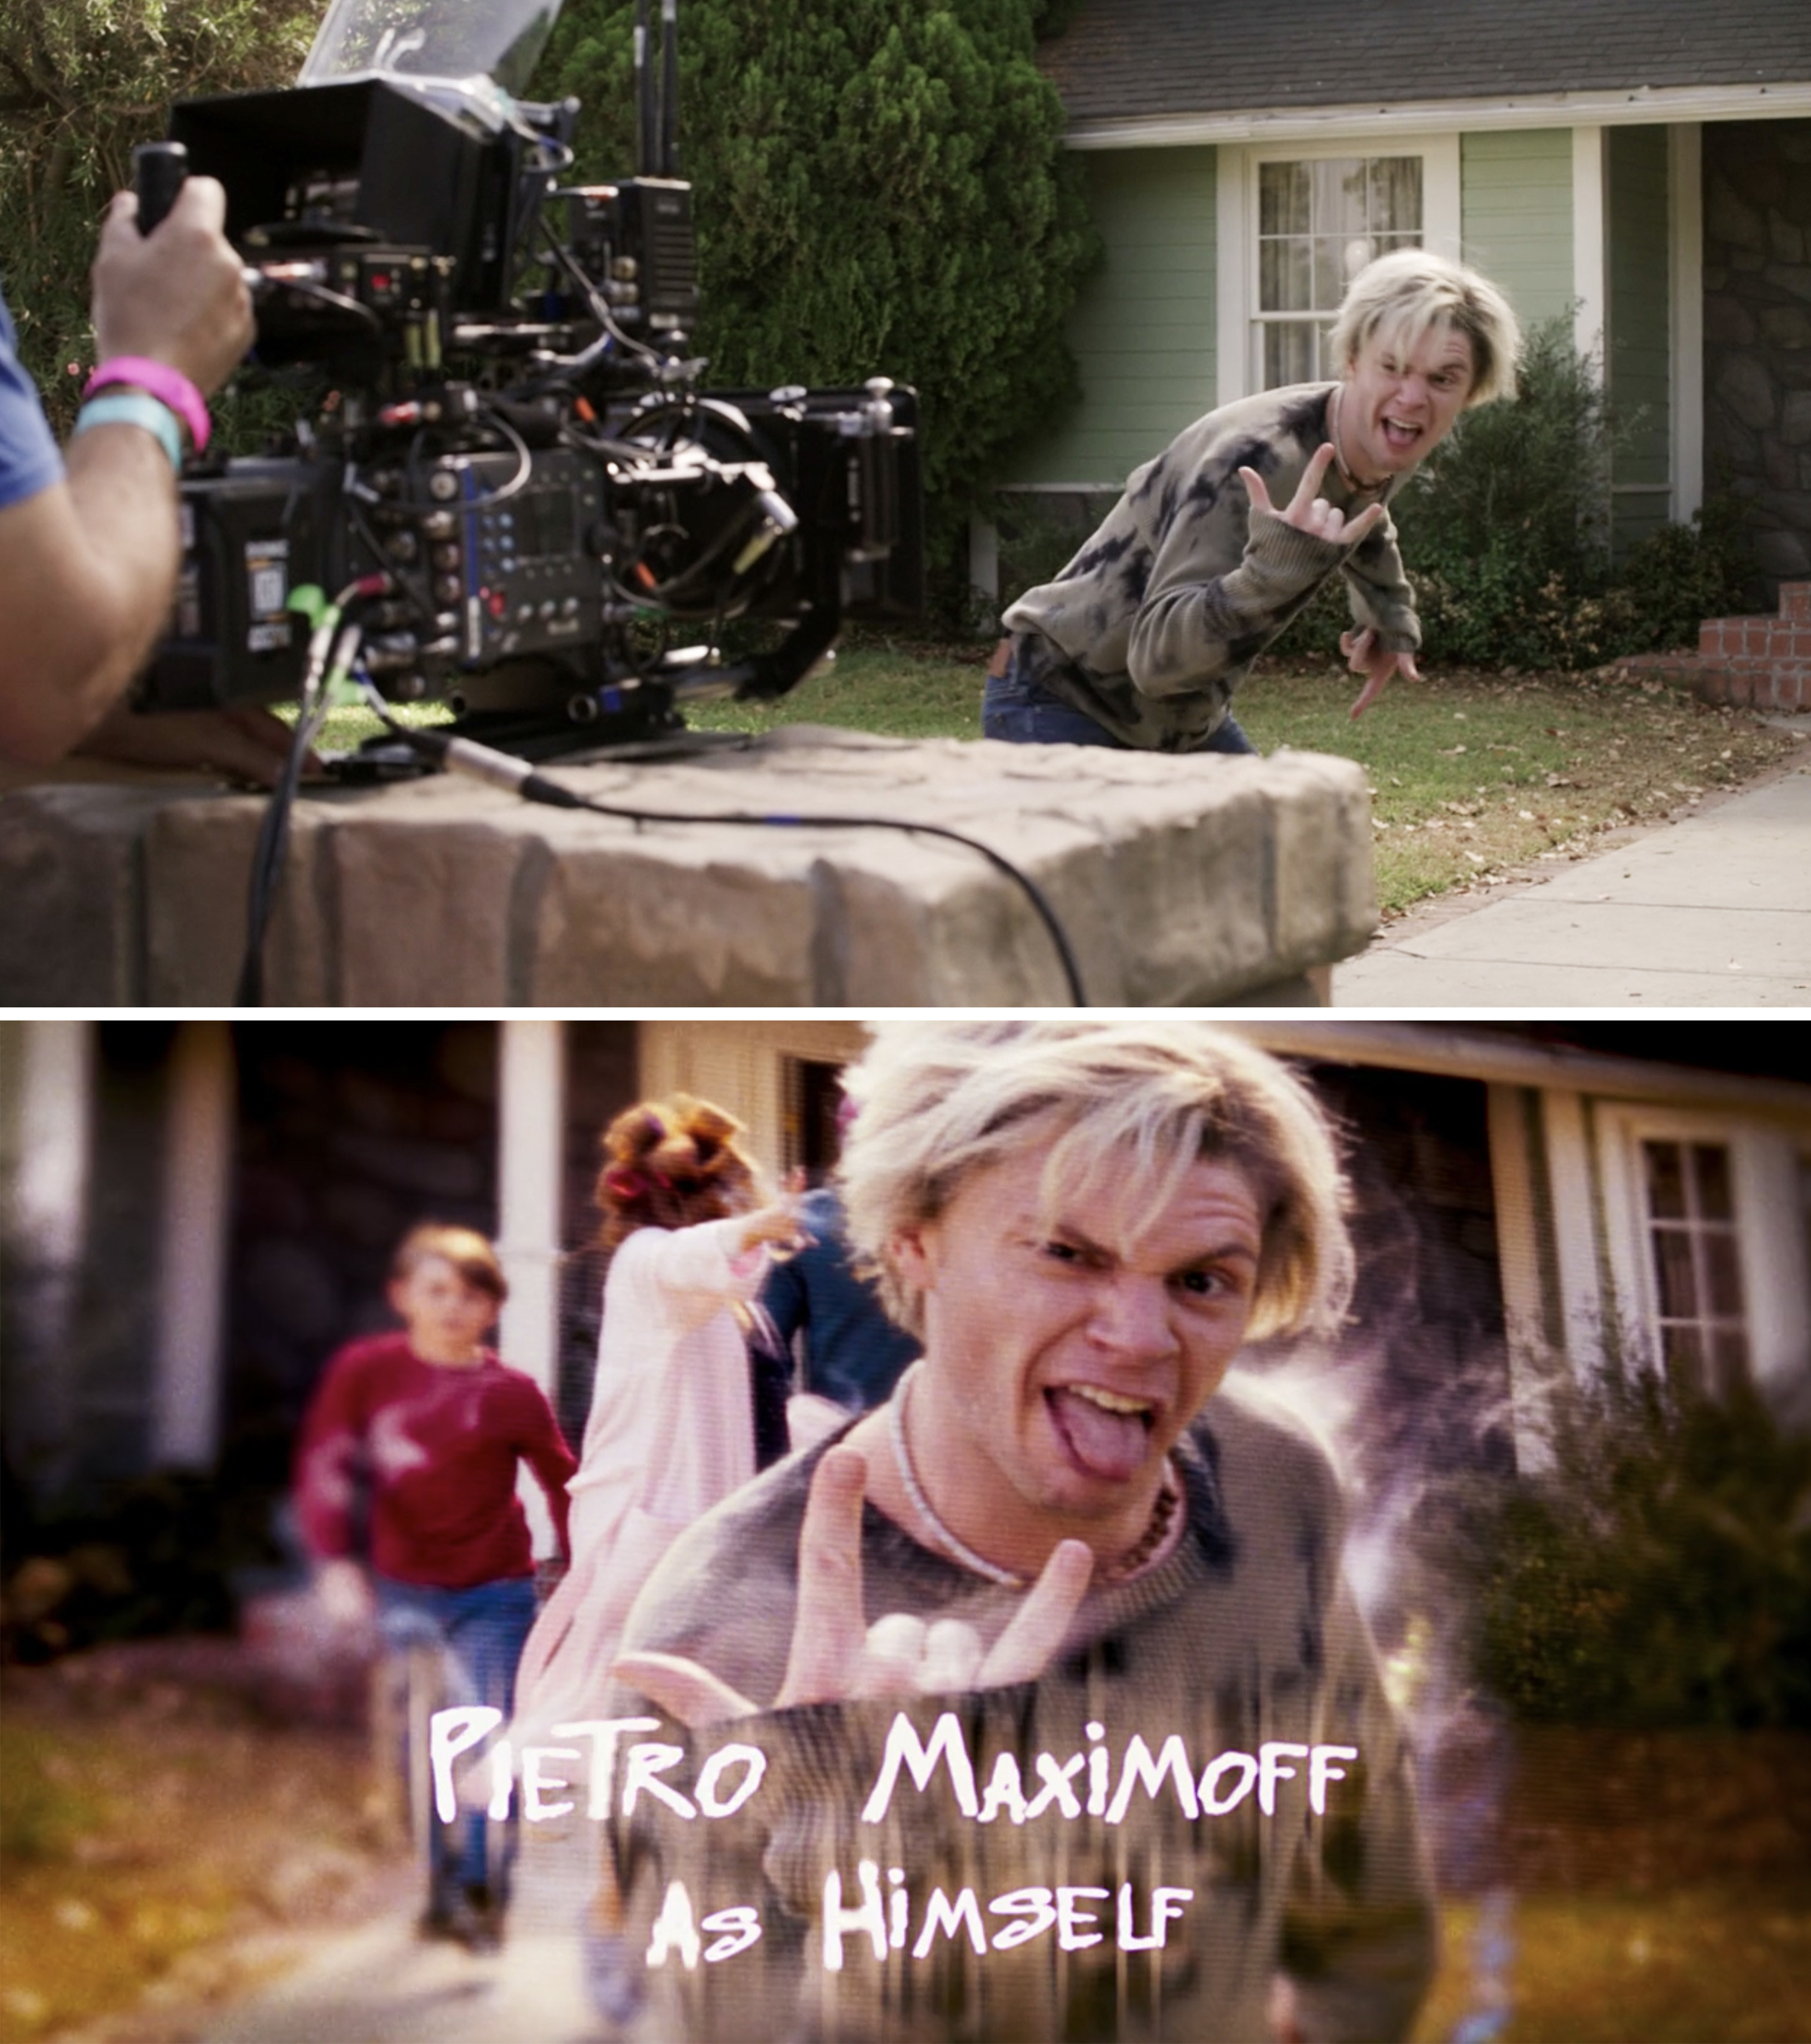 """Evan Peters as Pietro giving a """"rock on"""" sign to the camera"""